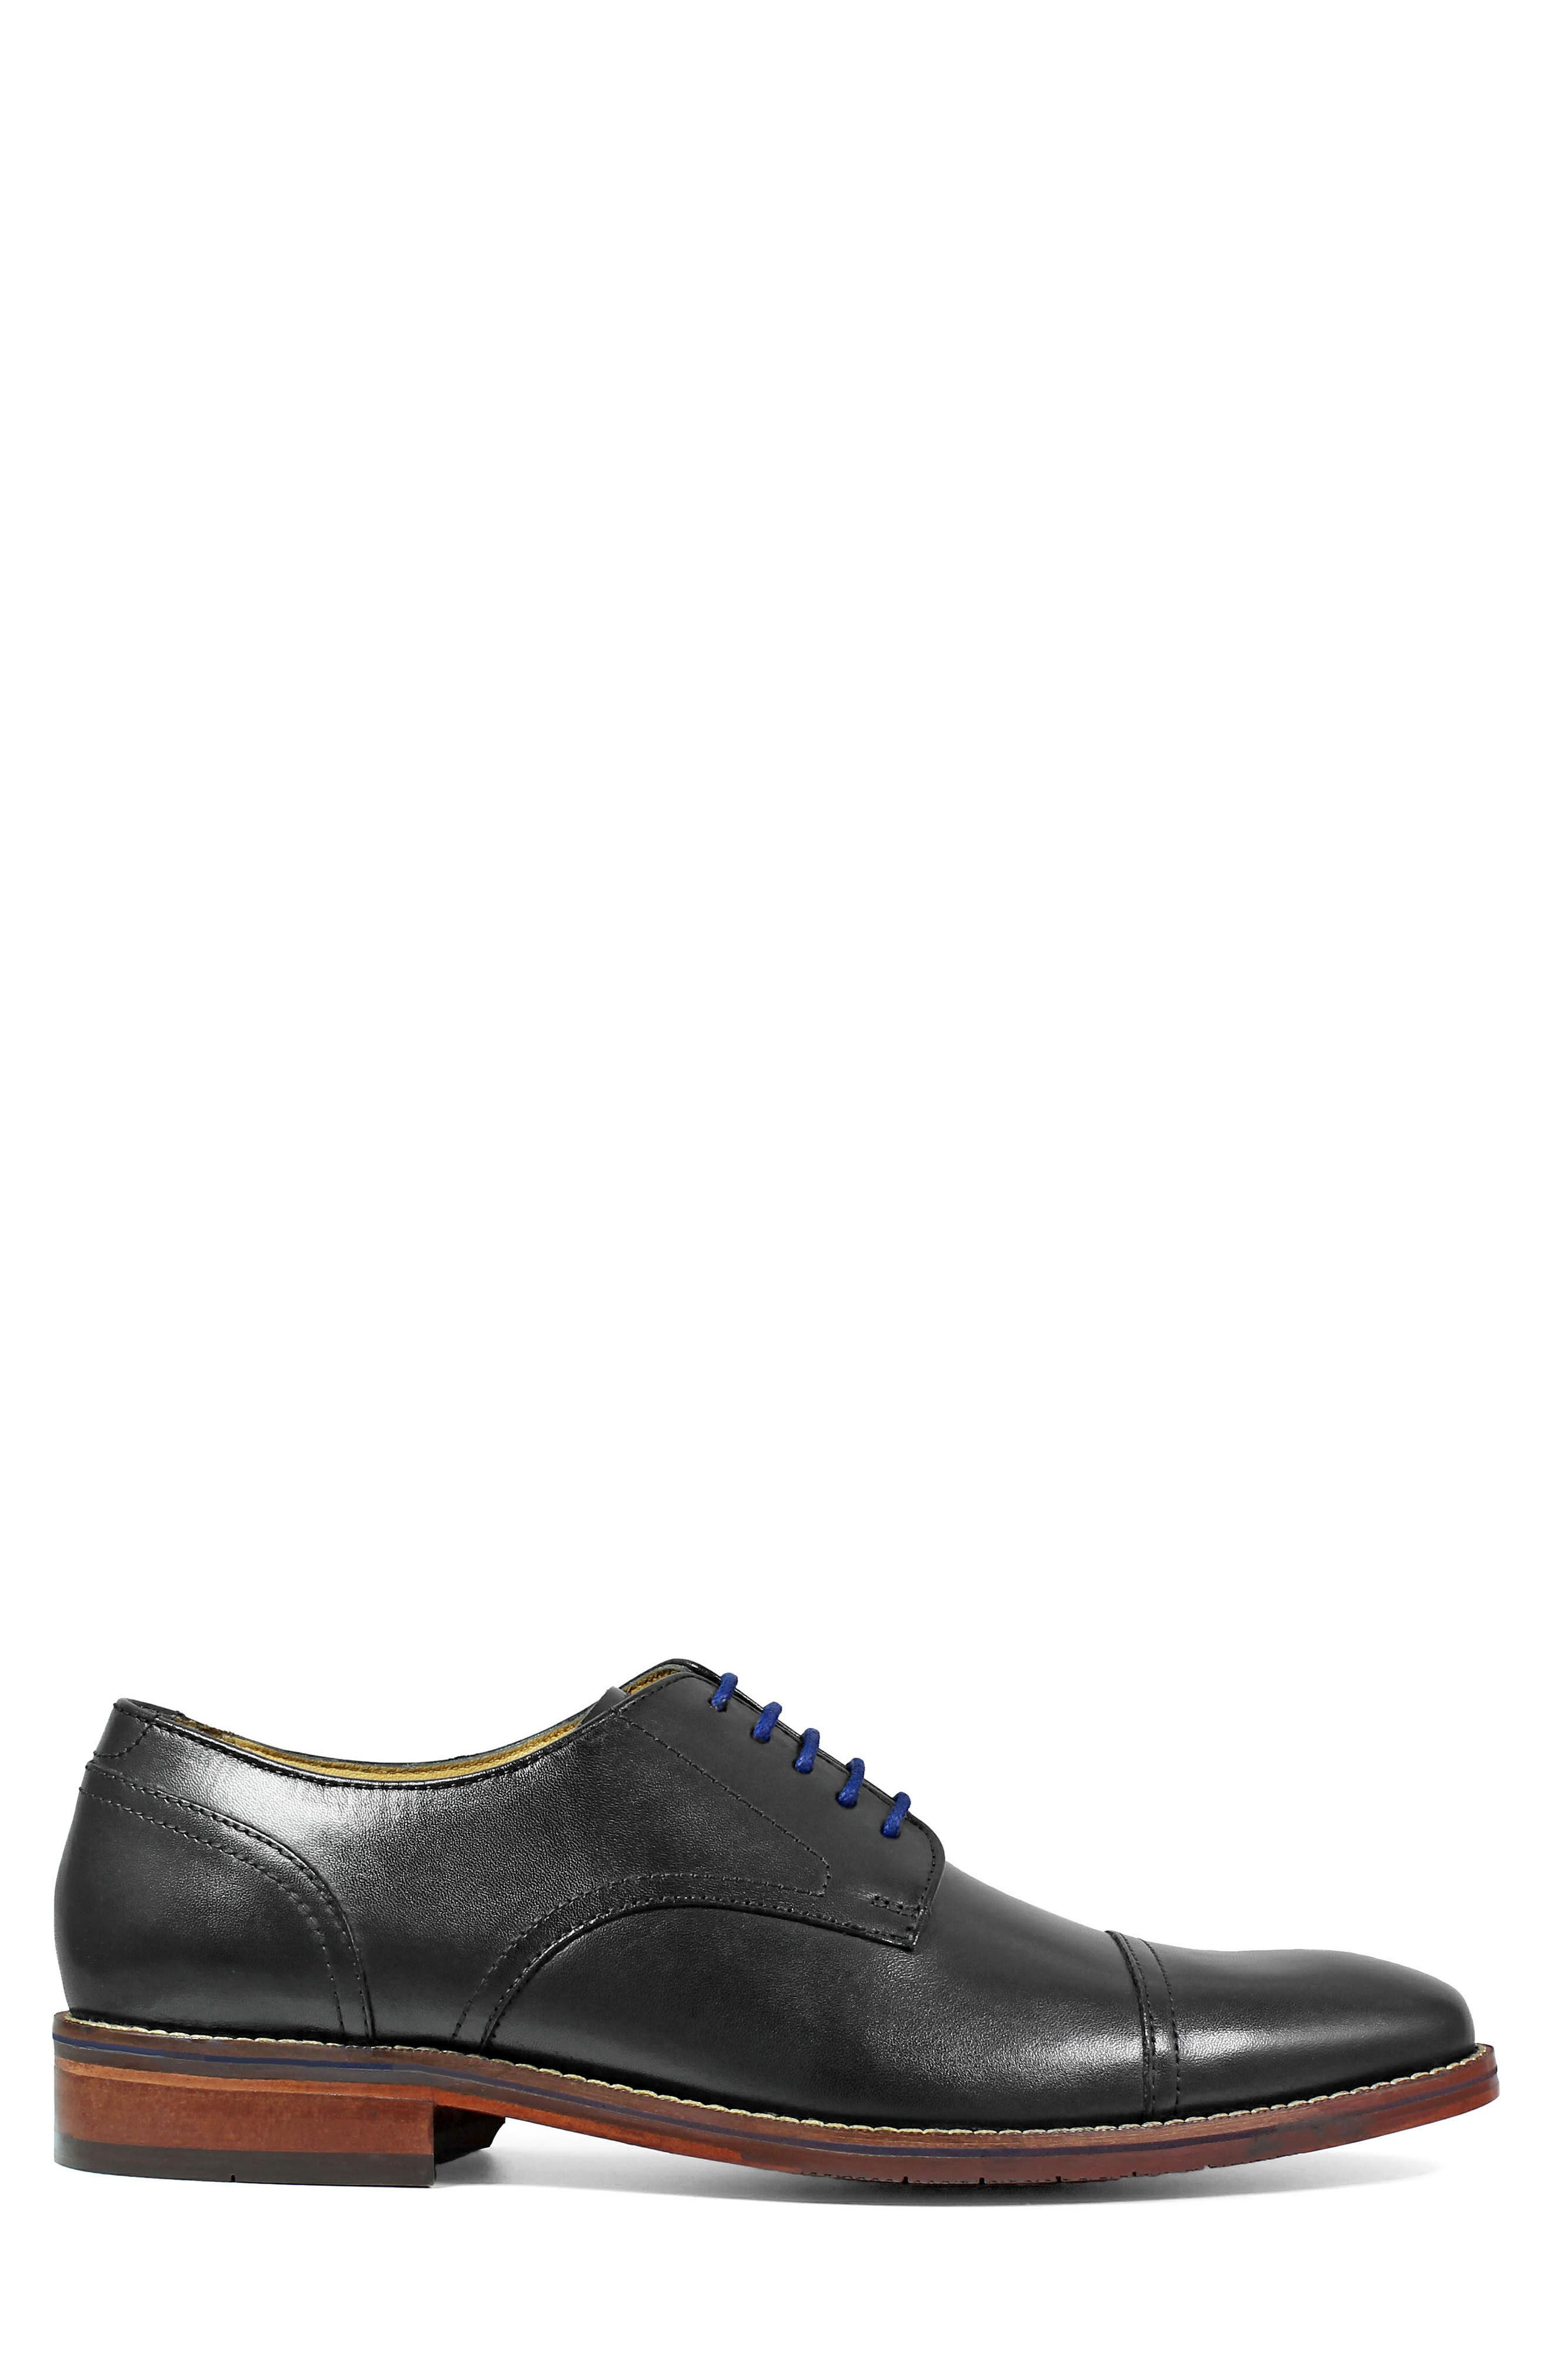 Salerno Cap Toe Derby,                             Alternate thumbnail 3, color,                             BLACK LEATHER